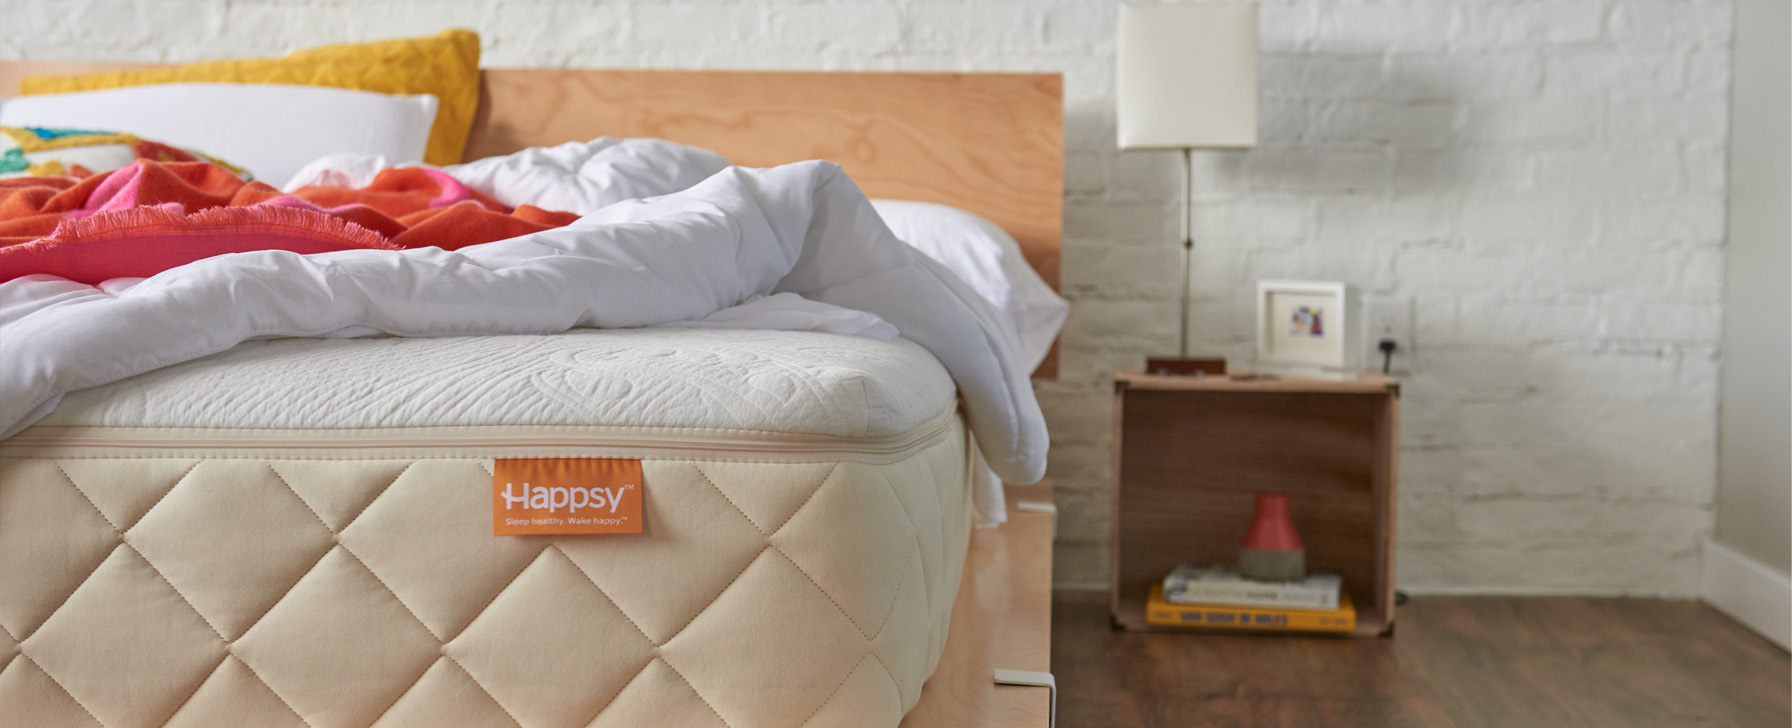 $225 off the Happsy Organic Mattress